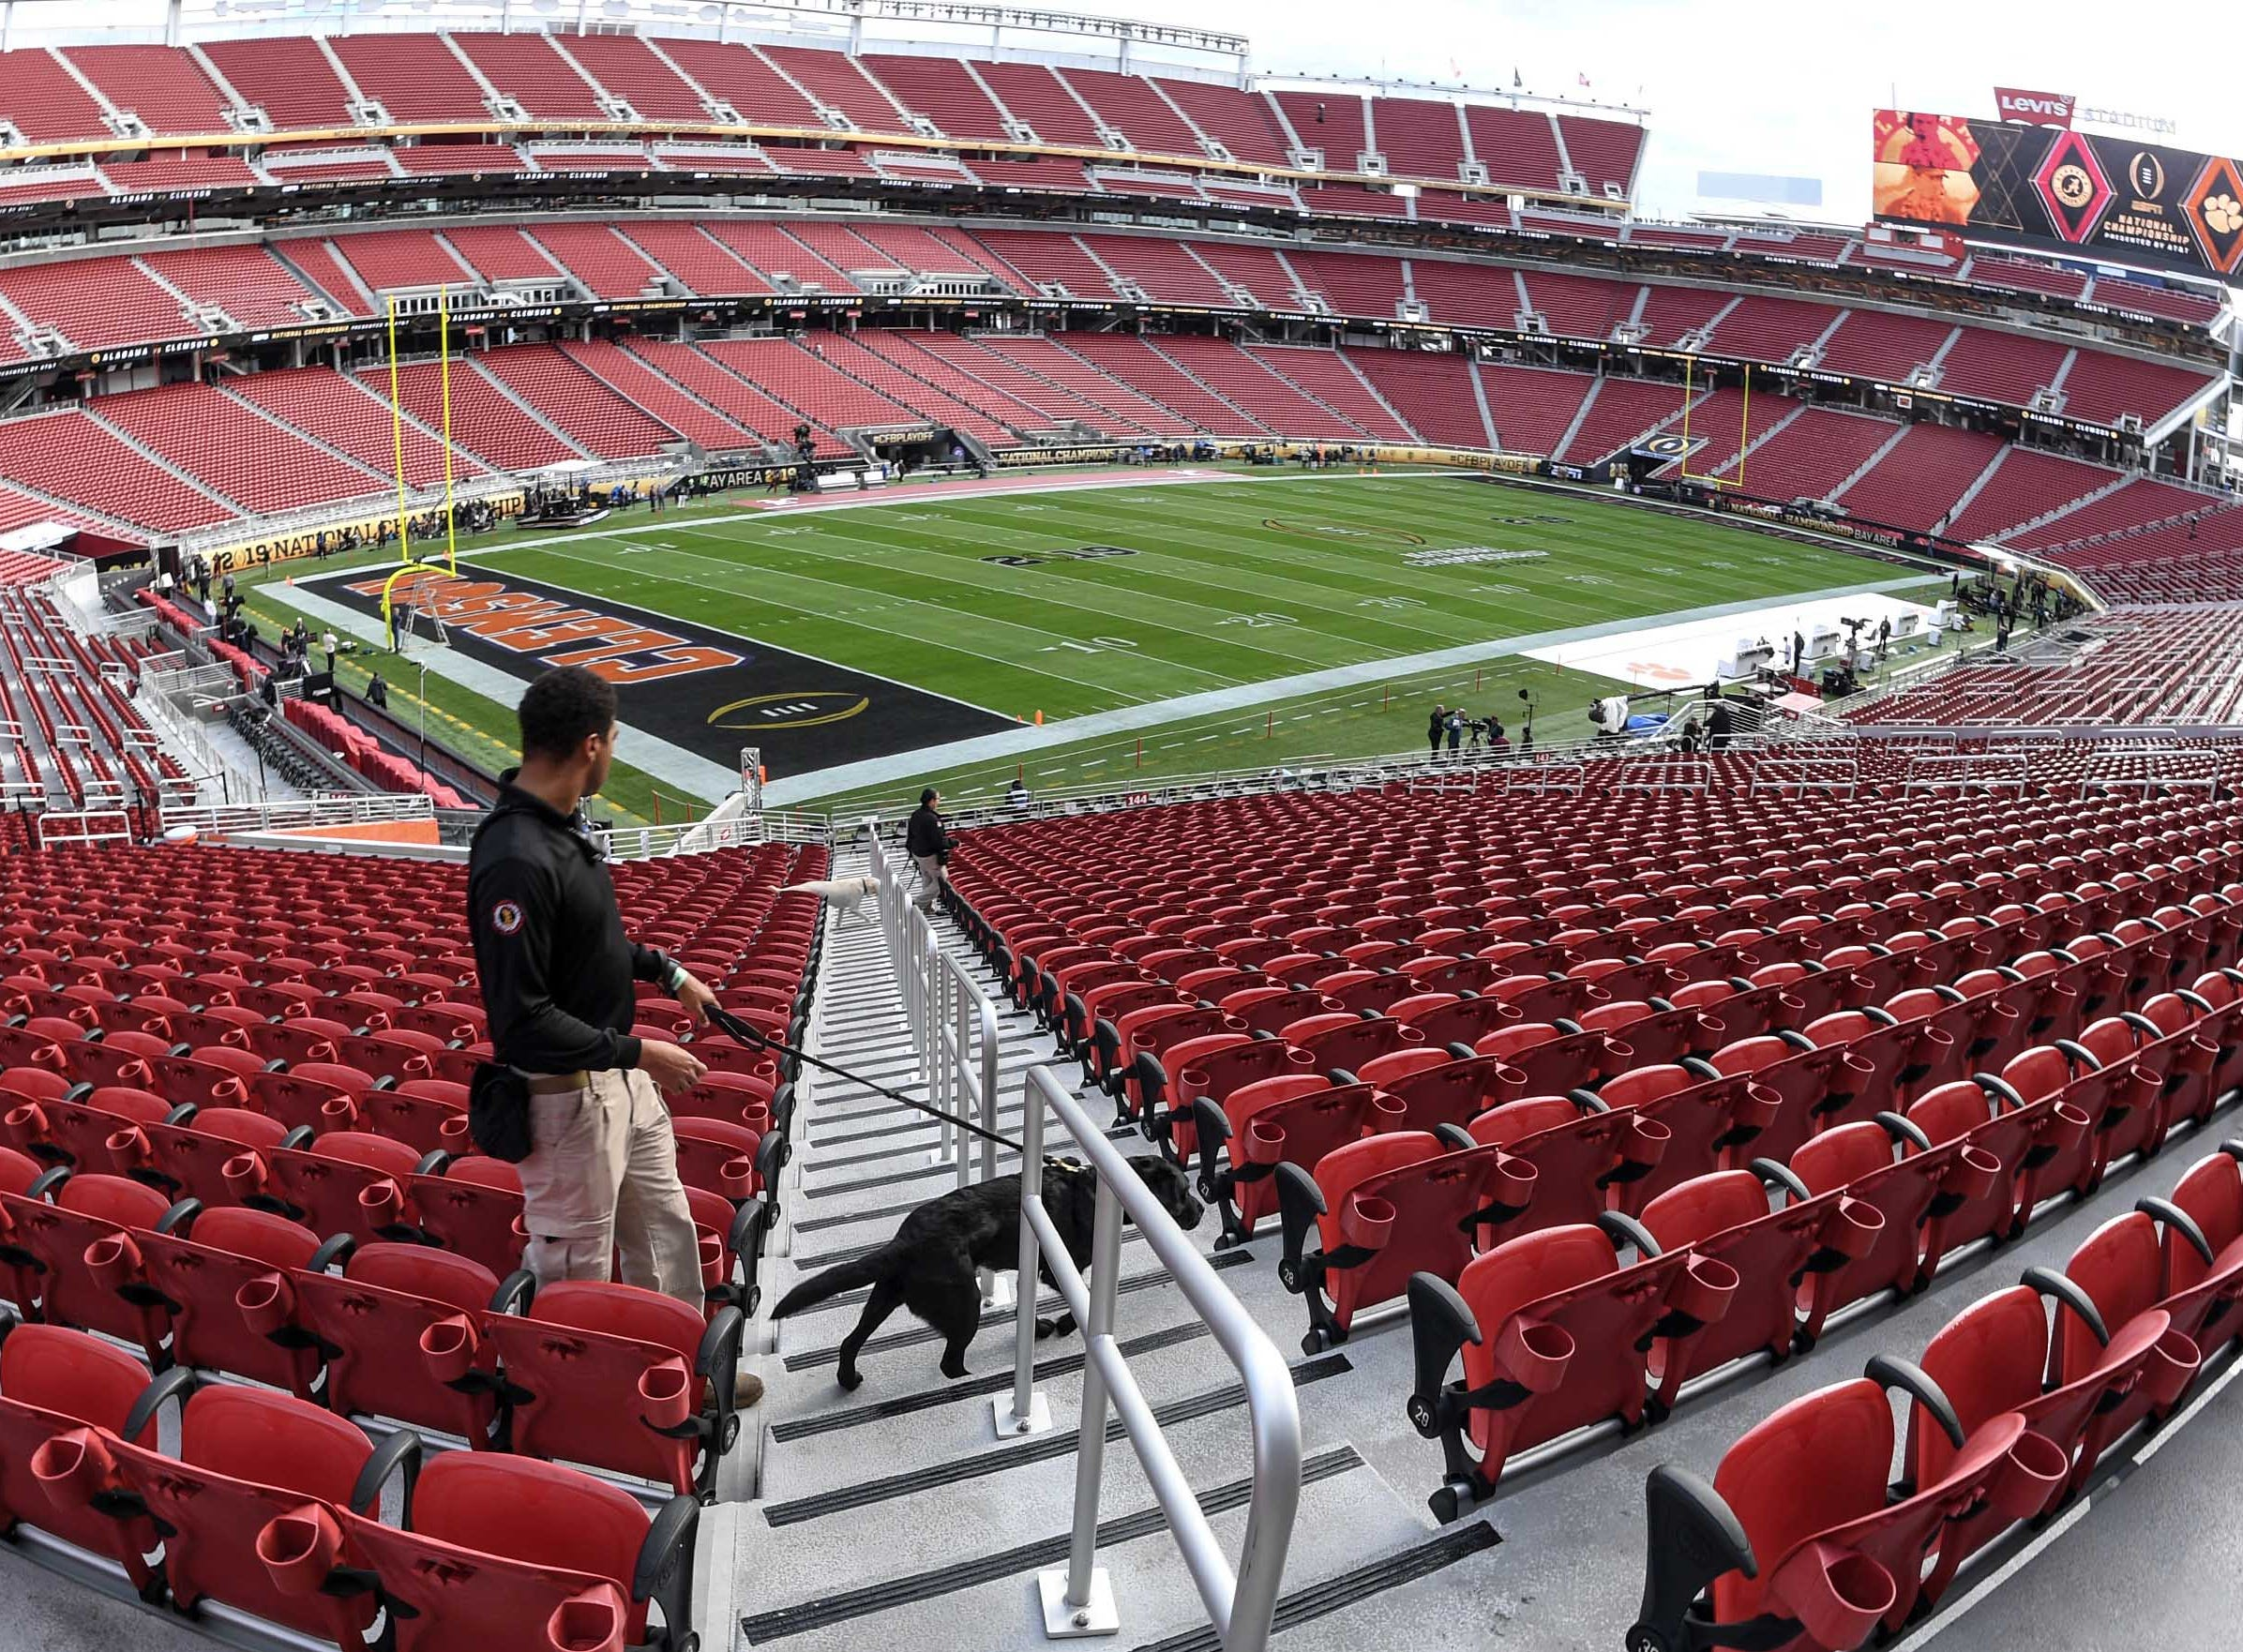 Officials patrol the stadium as many prepare before the kickoff during the College Football Championship at Levi's Stadium in Santa Clara, California Monday, January 7, 2019.